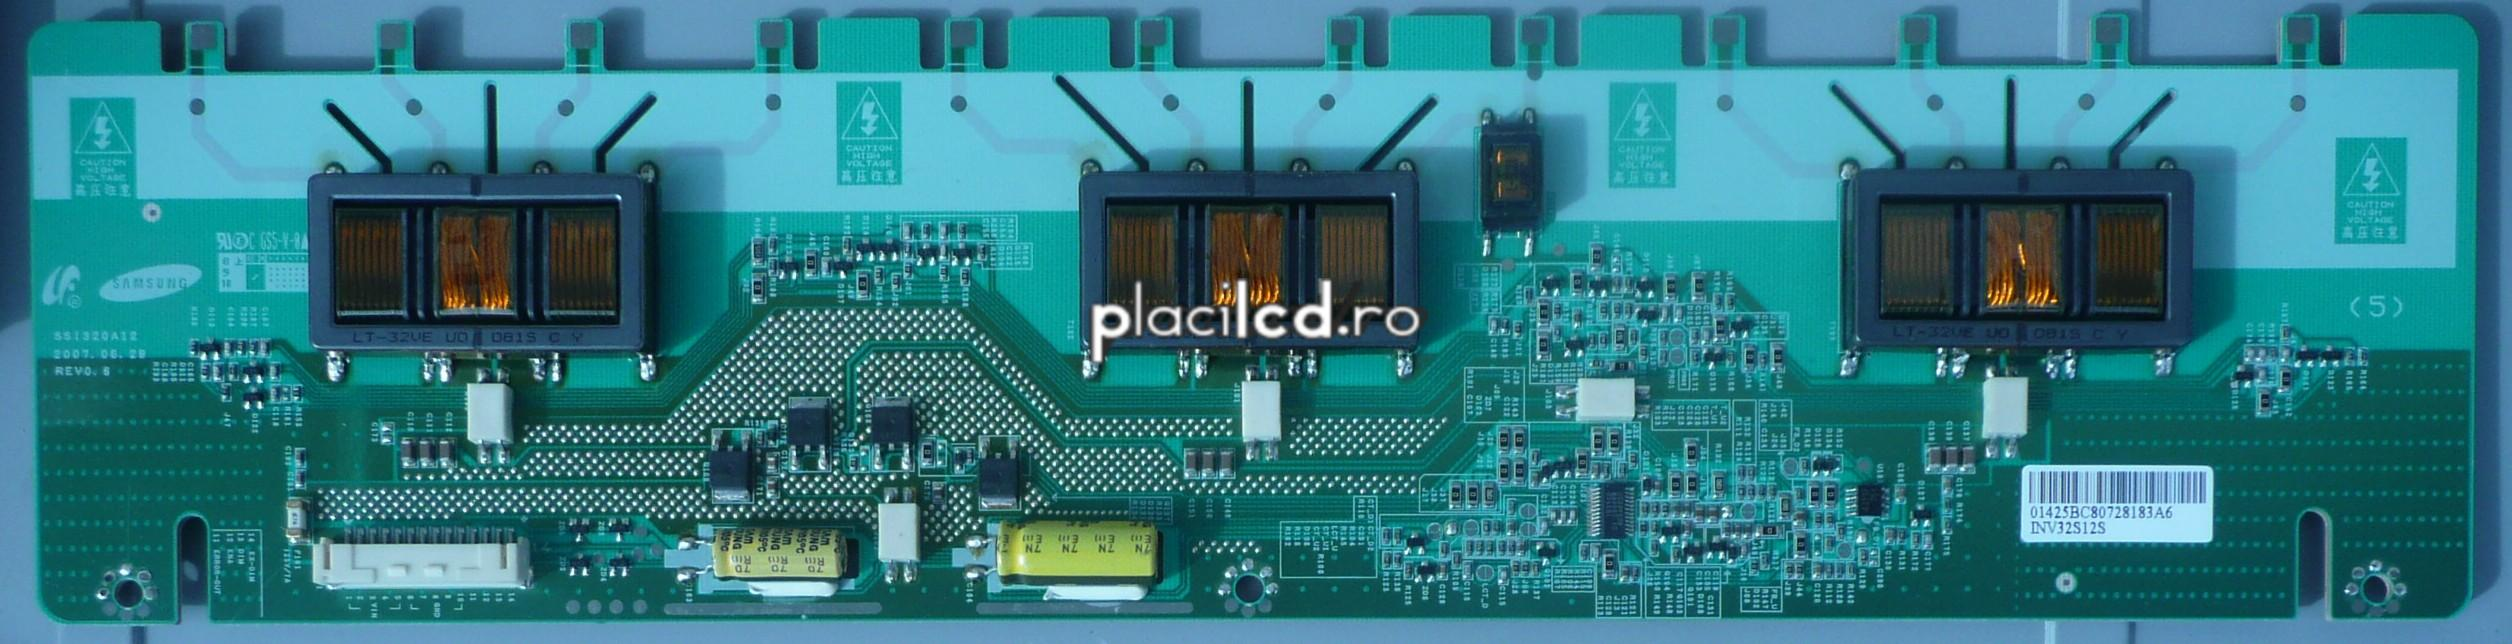 Placa invertoare SSI320A12